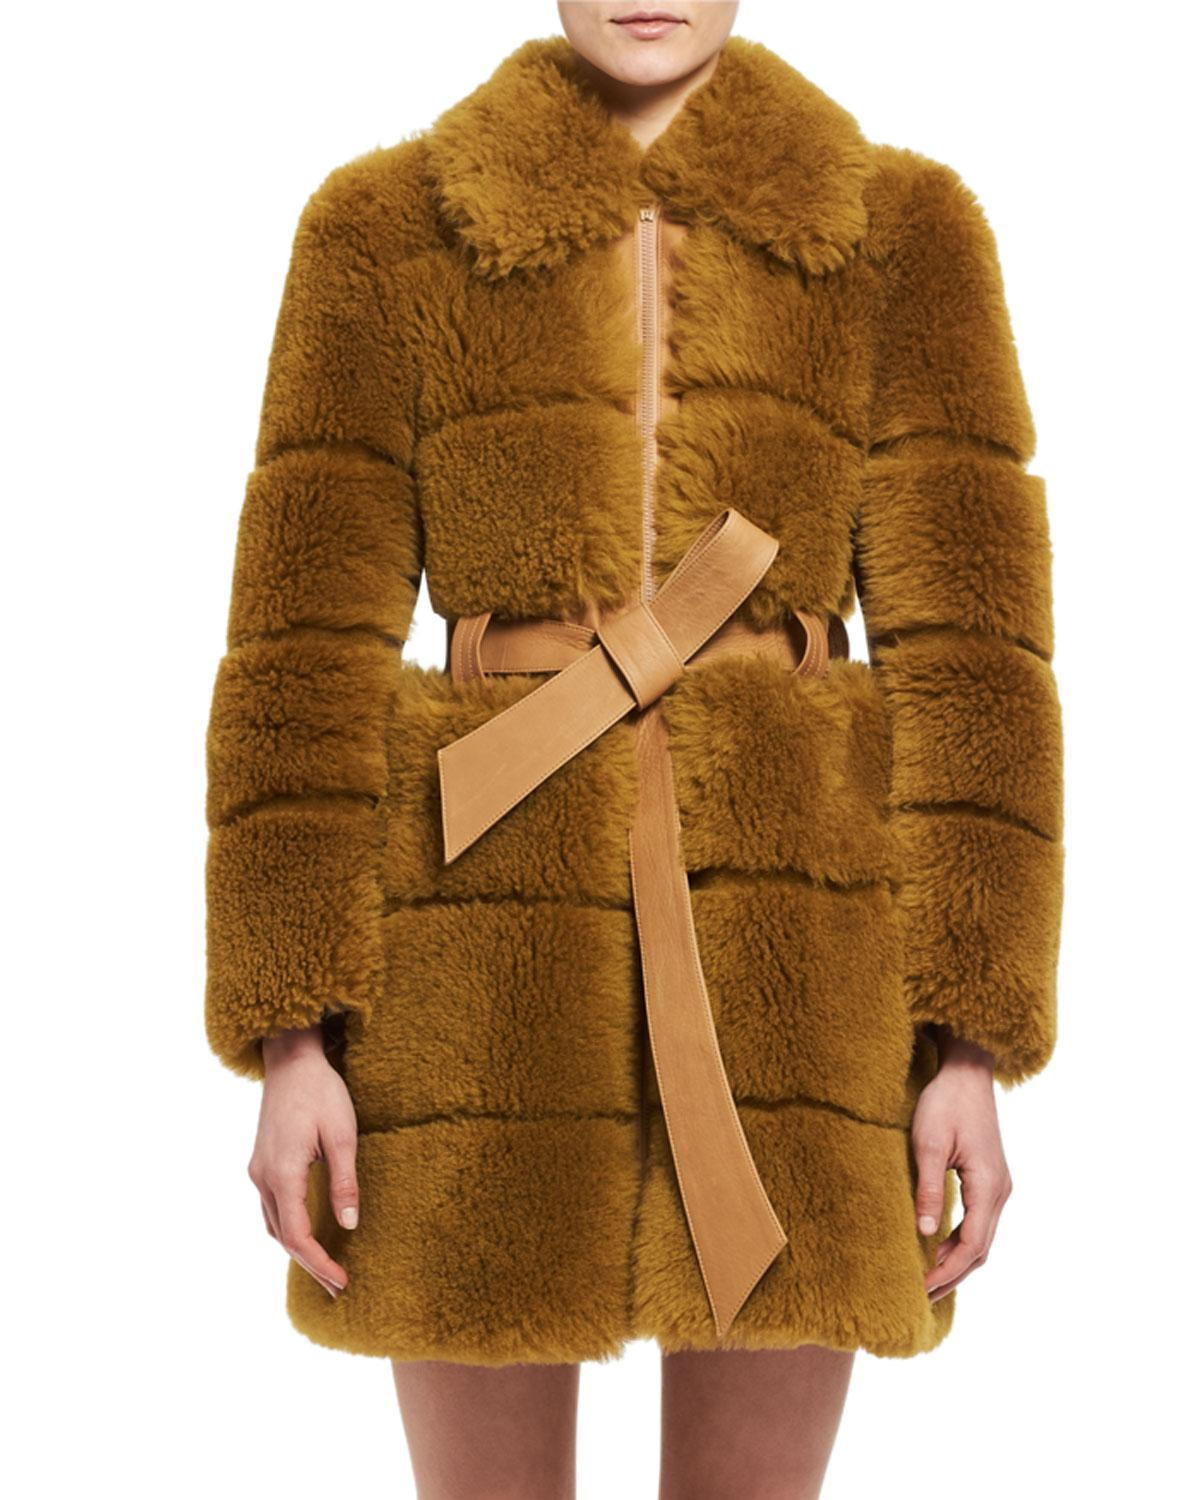 Lyst - Chloé Quilted Shearling Fur Coat in Brown 36f8d68beff3